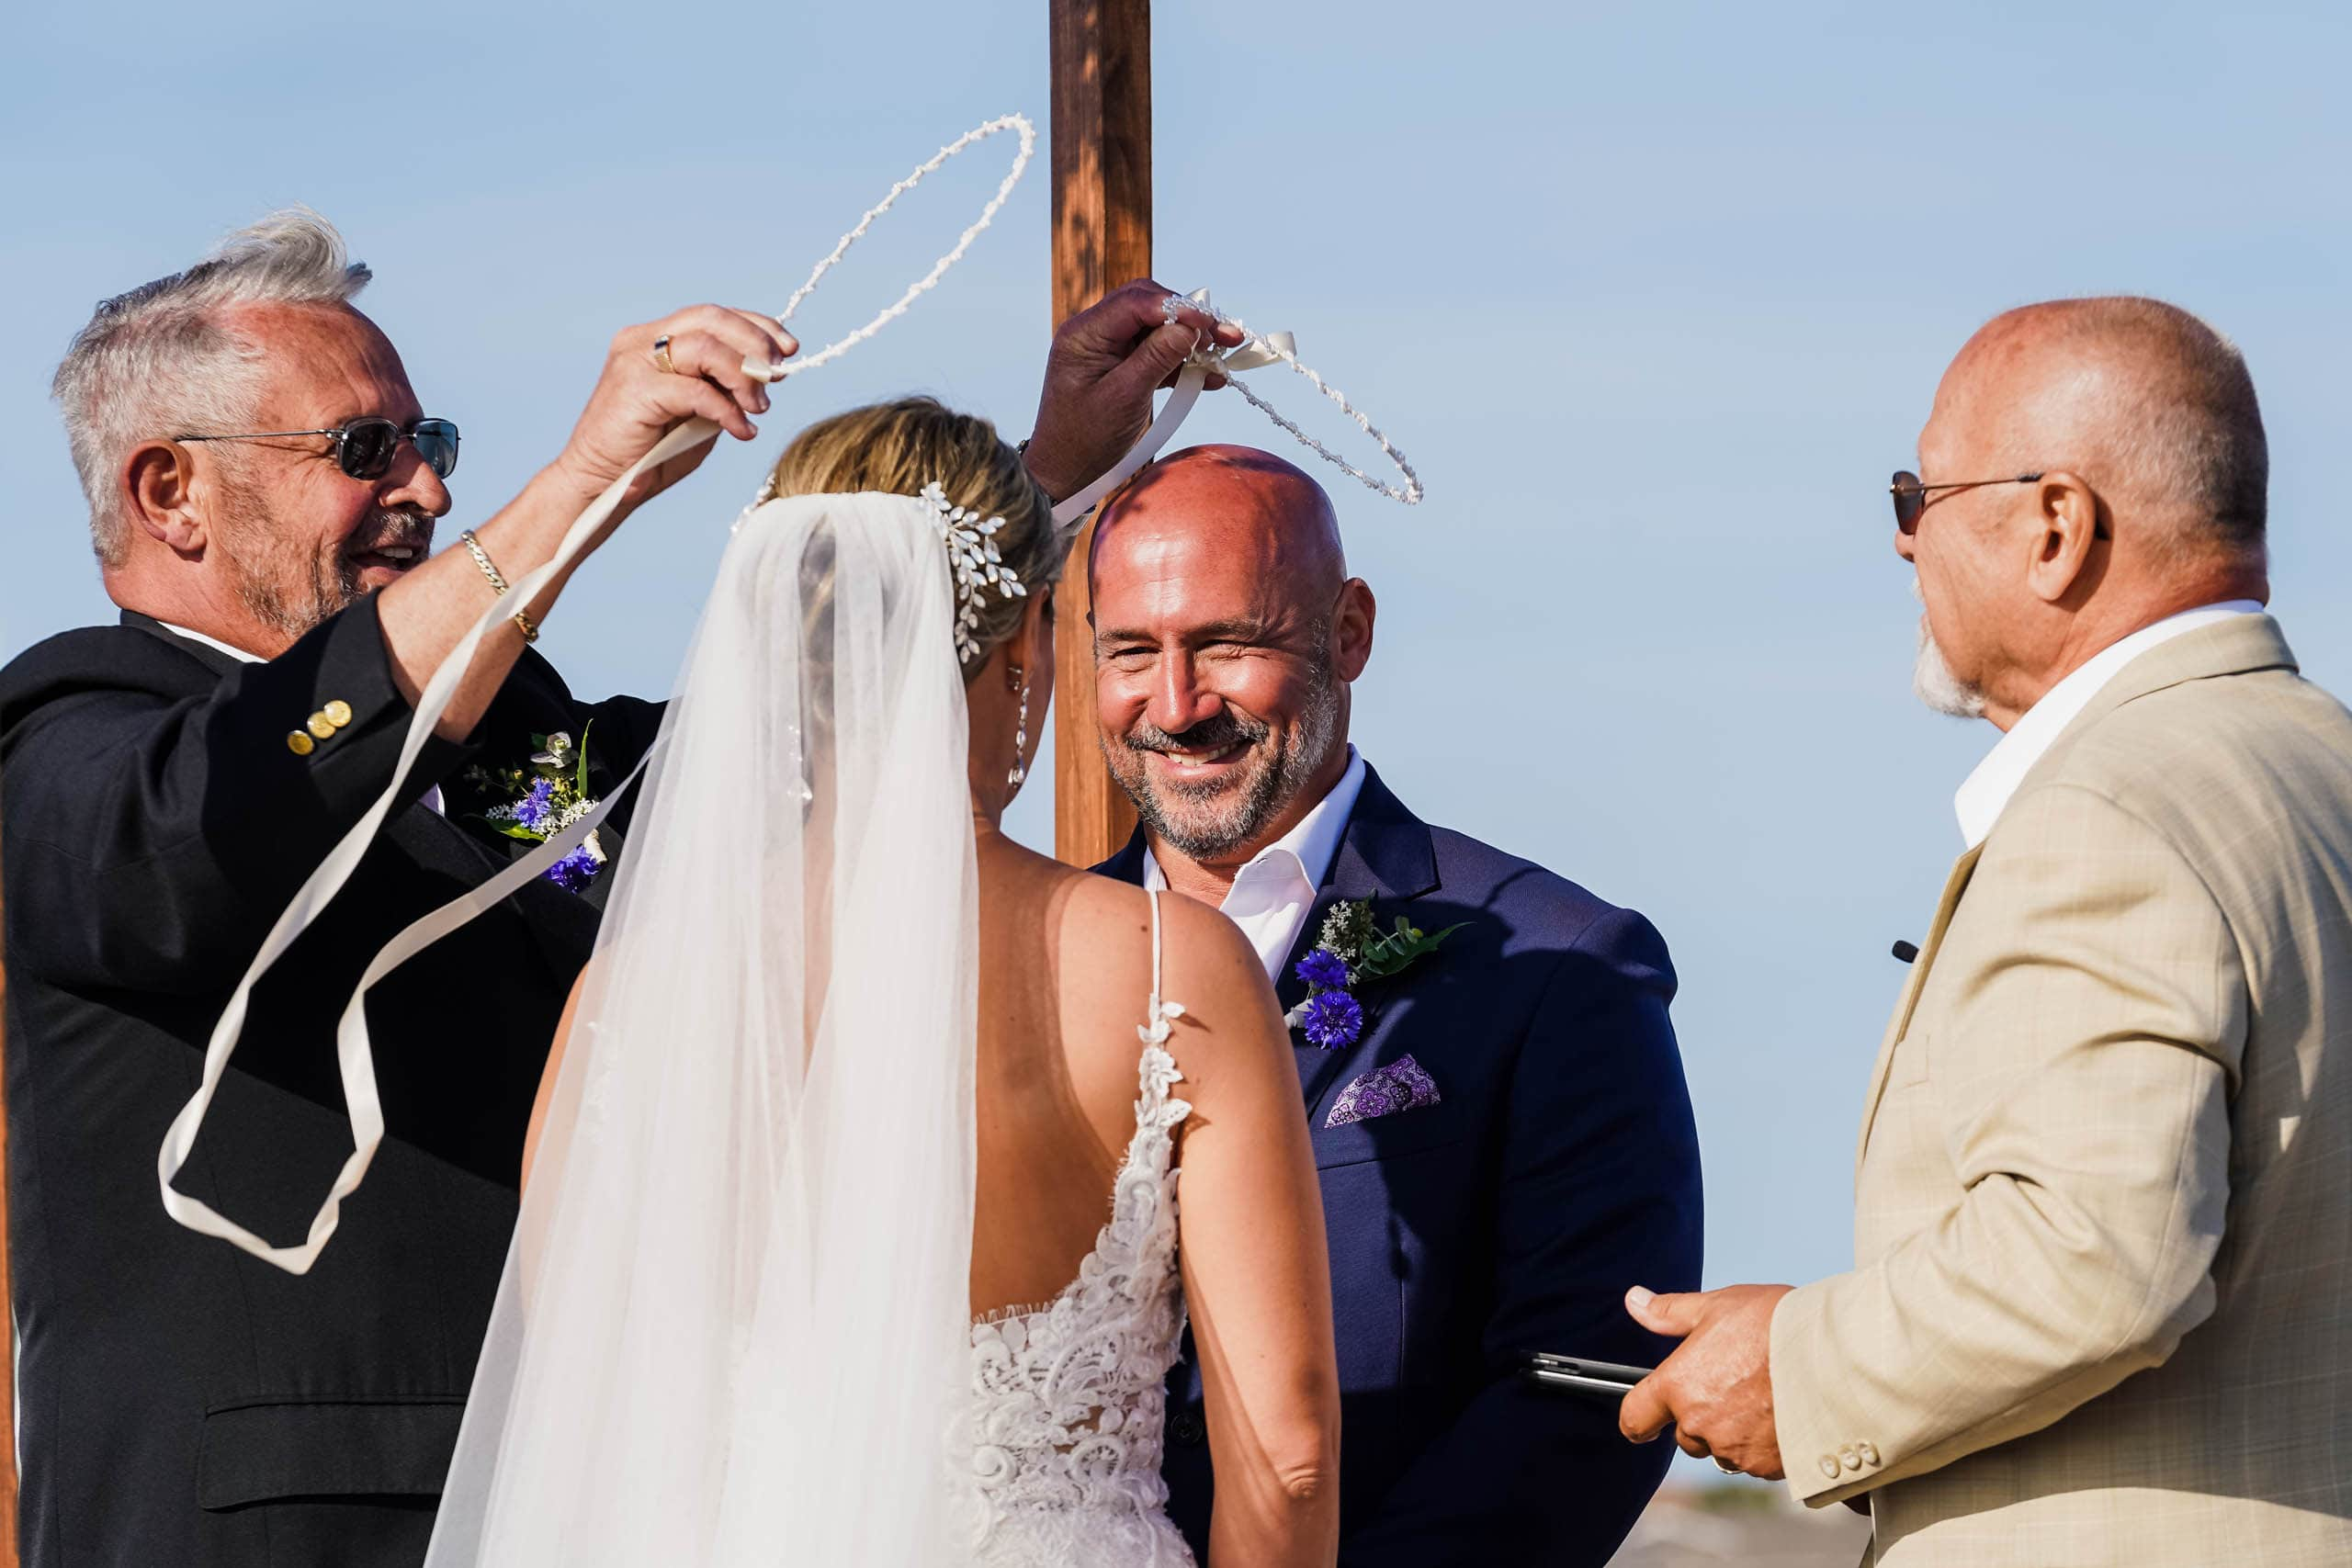 Bride and Groom Greek Crown Ceremony at Beach Wedding by Susan DeLoach Photography